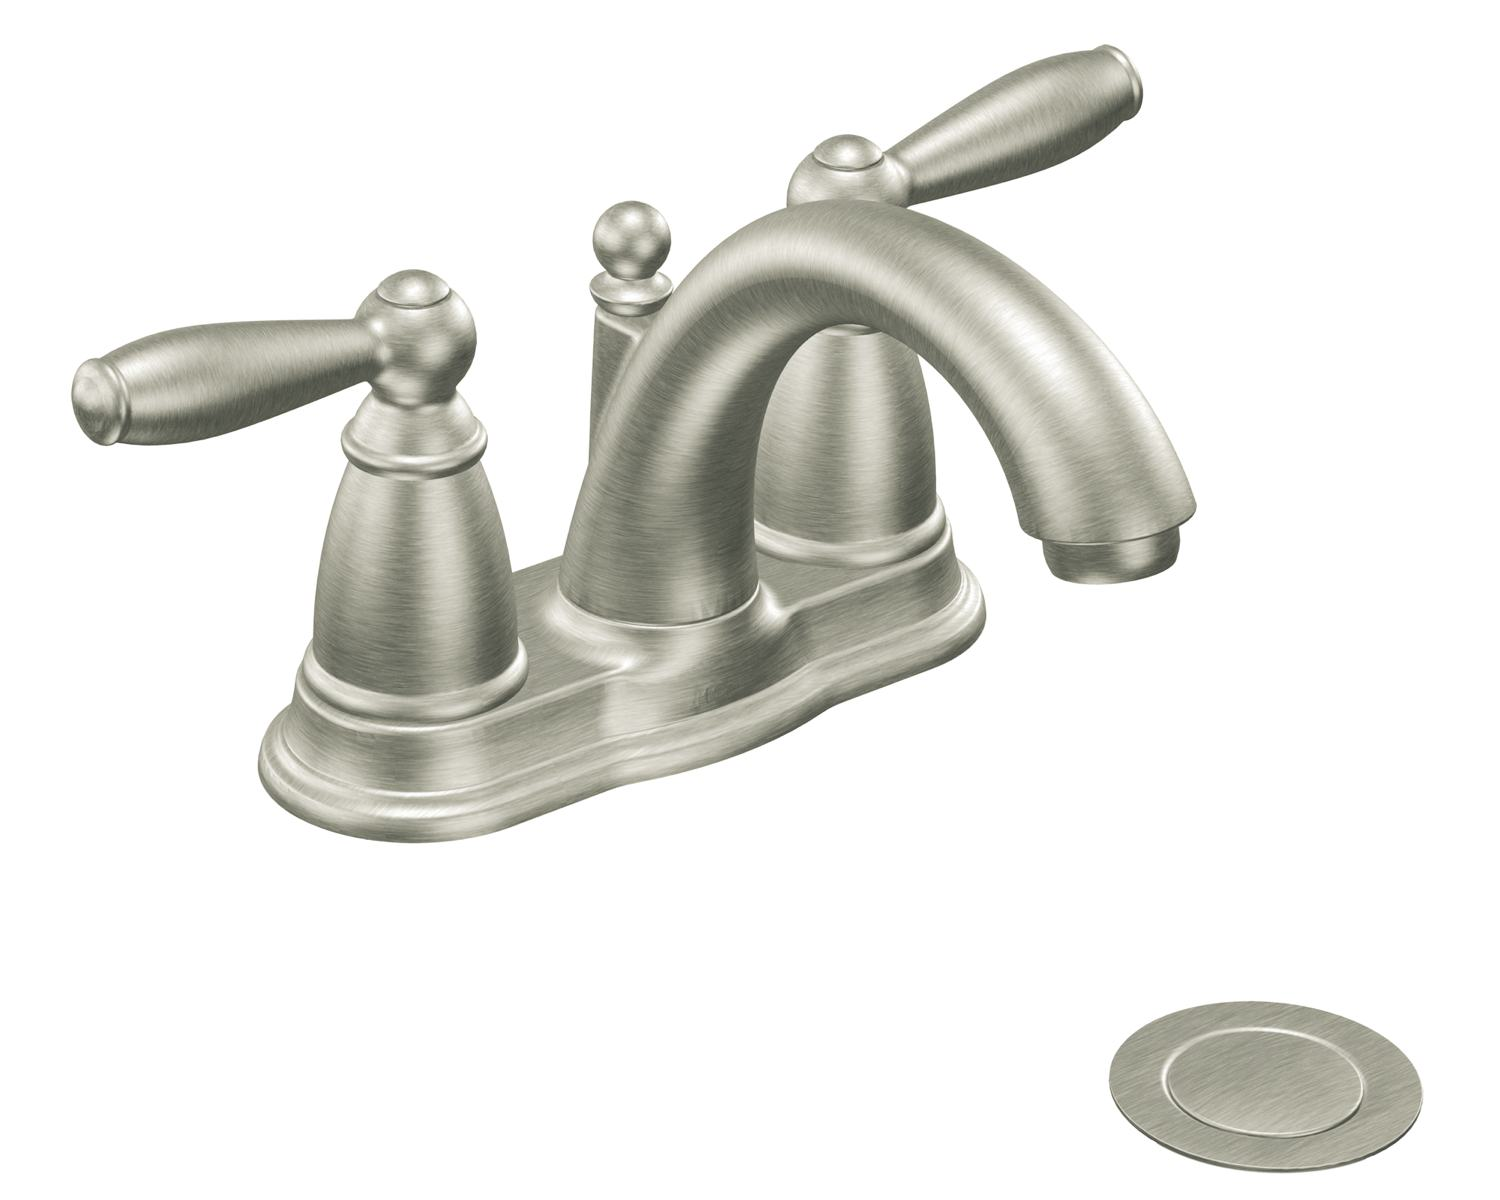 Moen 6610bn Brantford Two Handle Low Arc Centerset Bathroom Faucet With Drain Assembly Brushed